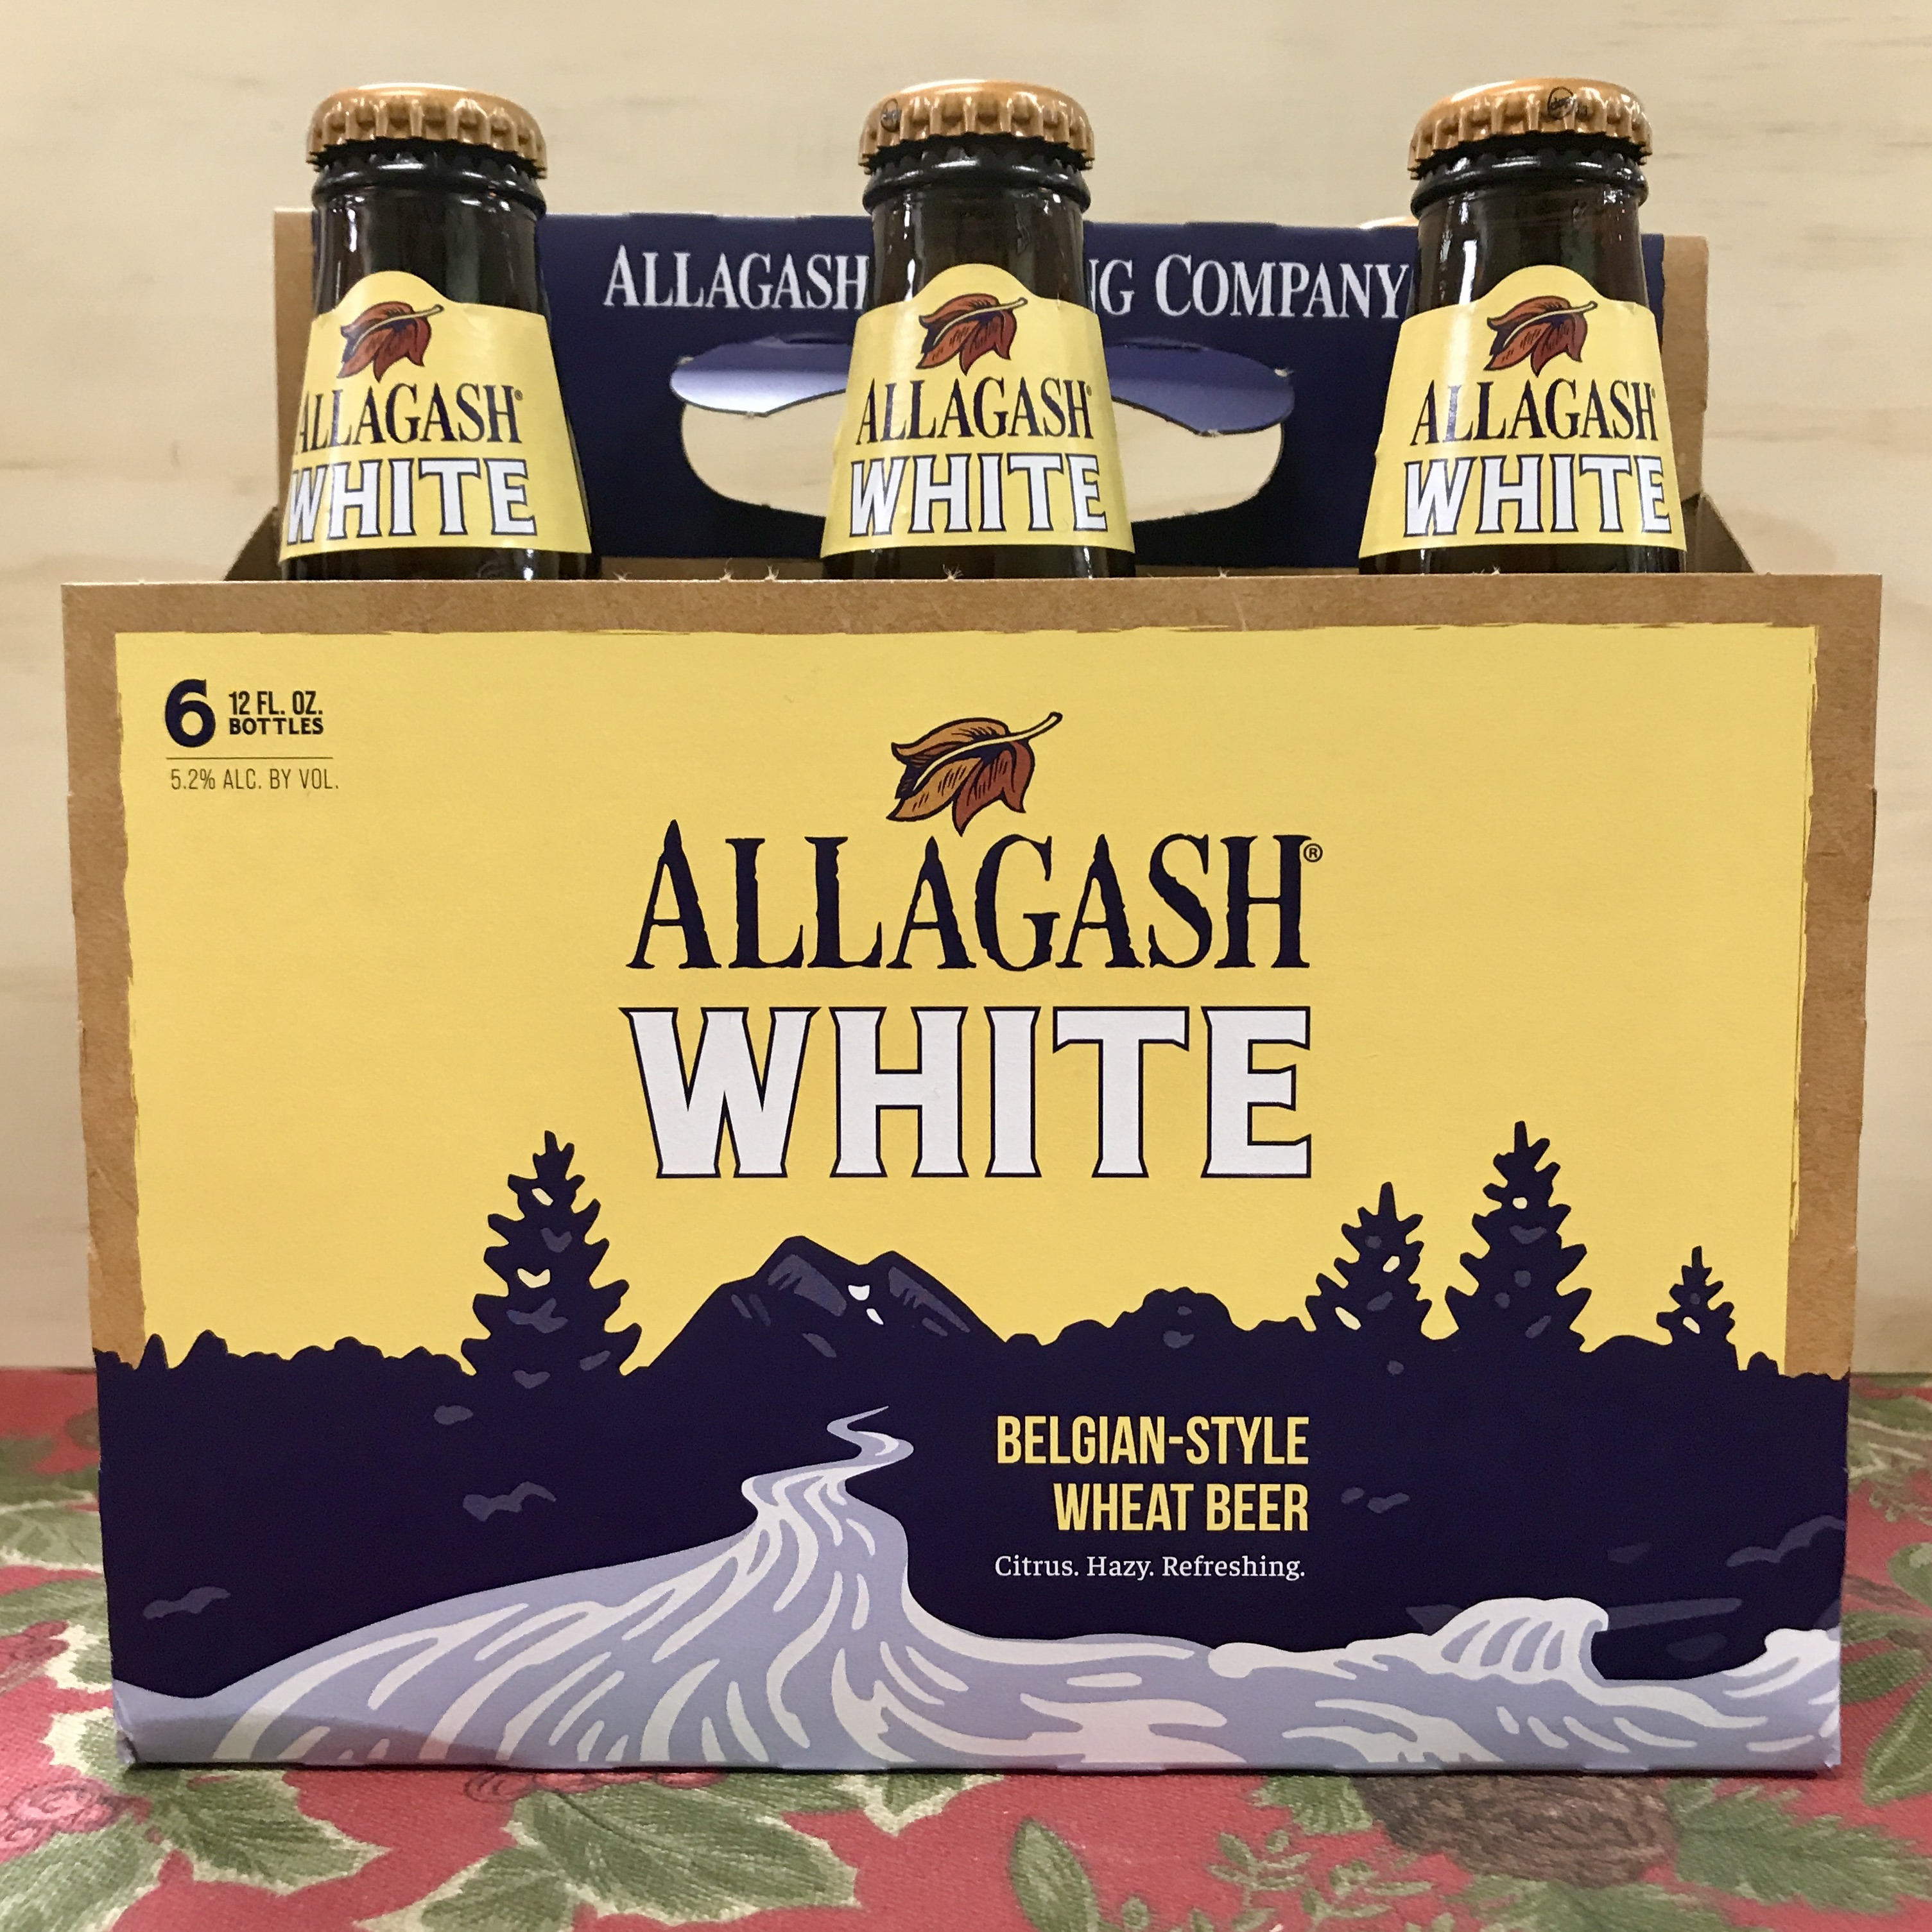 Allagash White Belgian-style Wheat Beer 6pk/12oz bottles